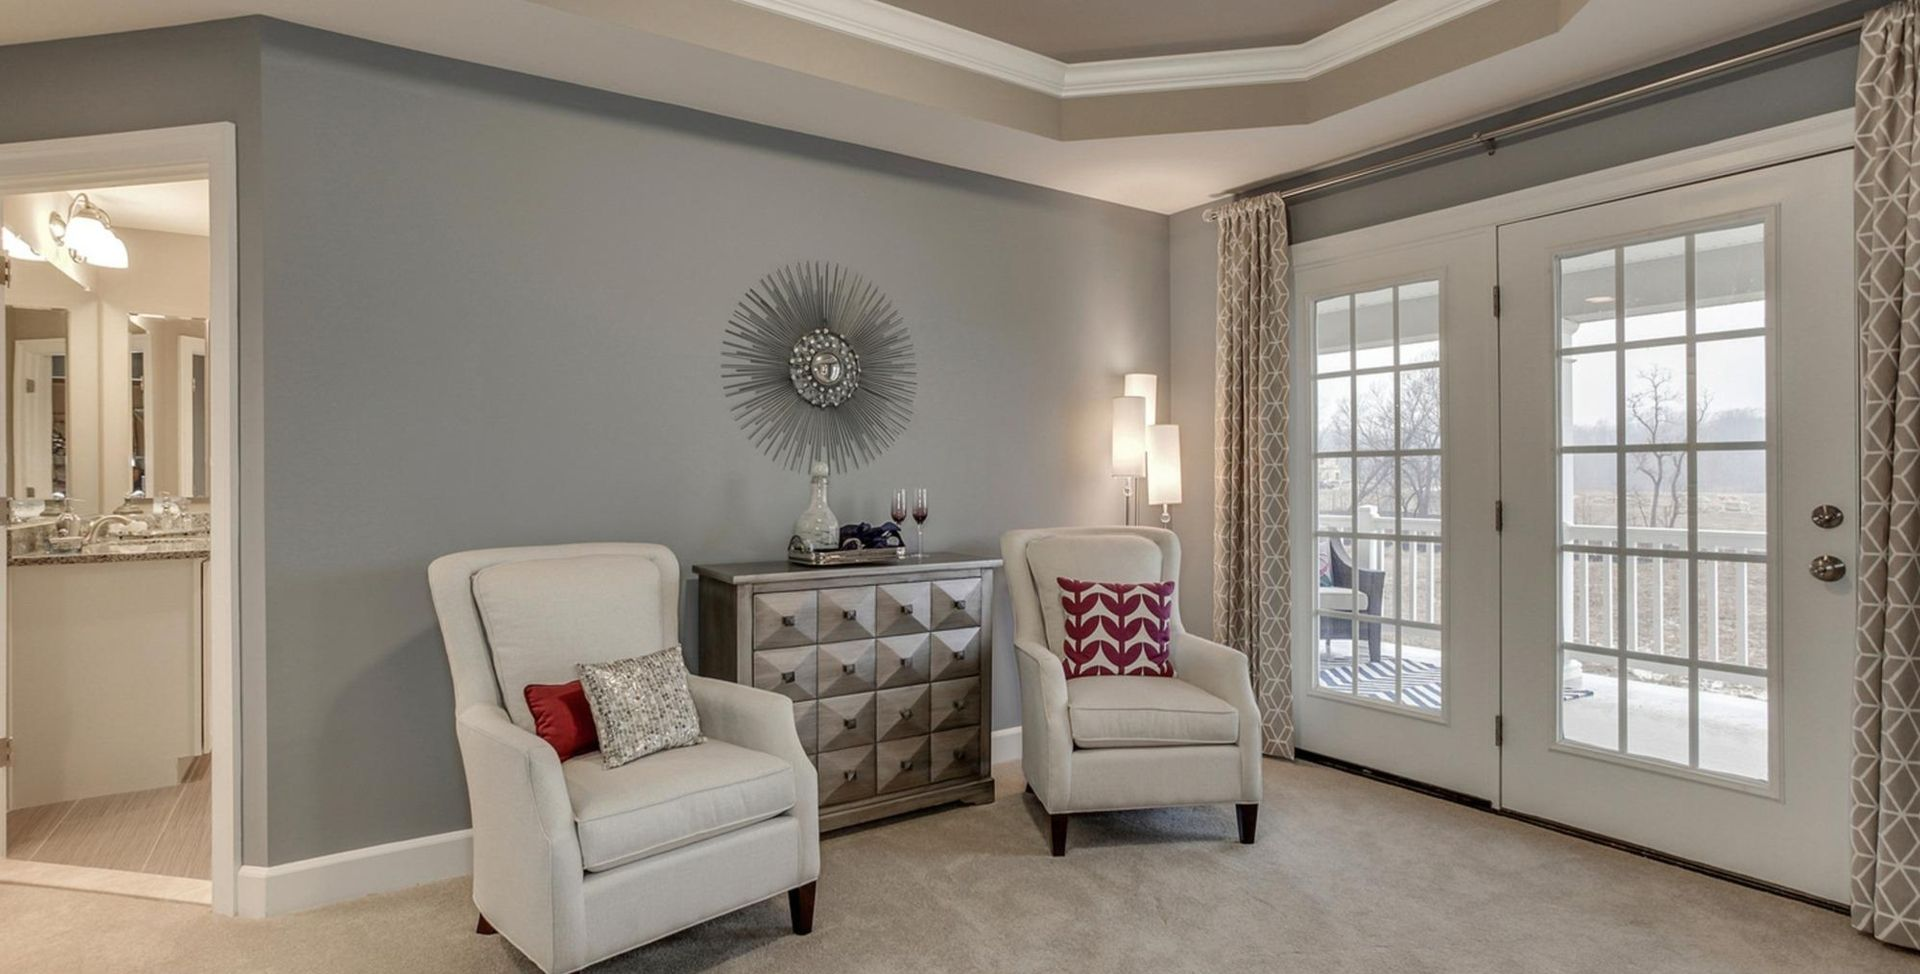 Living Area featured in the Sorrento MG By Mid-Atlantic Builders in Washington, MD